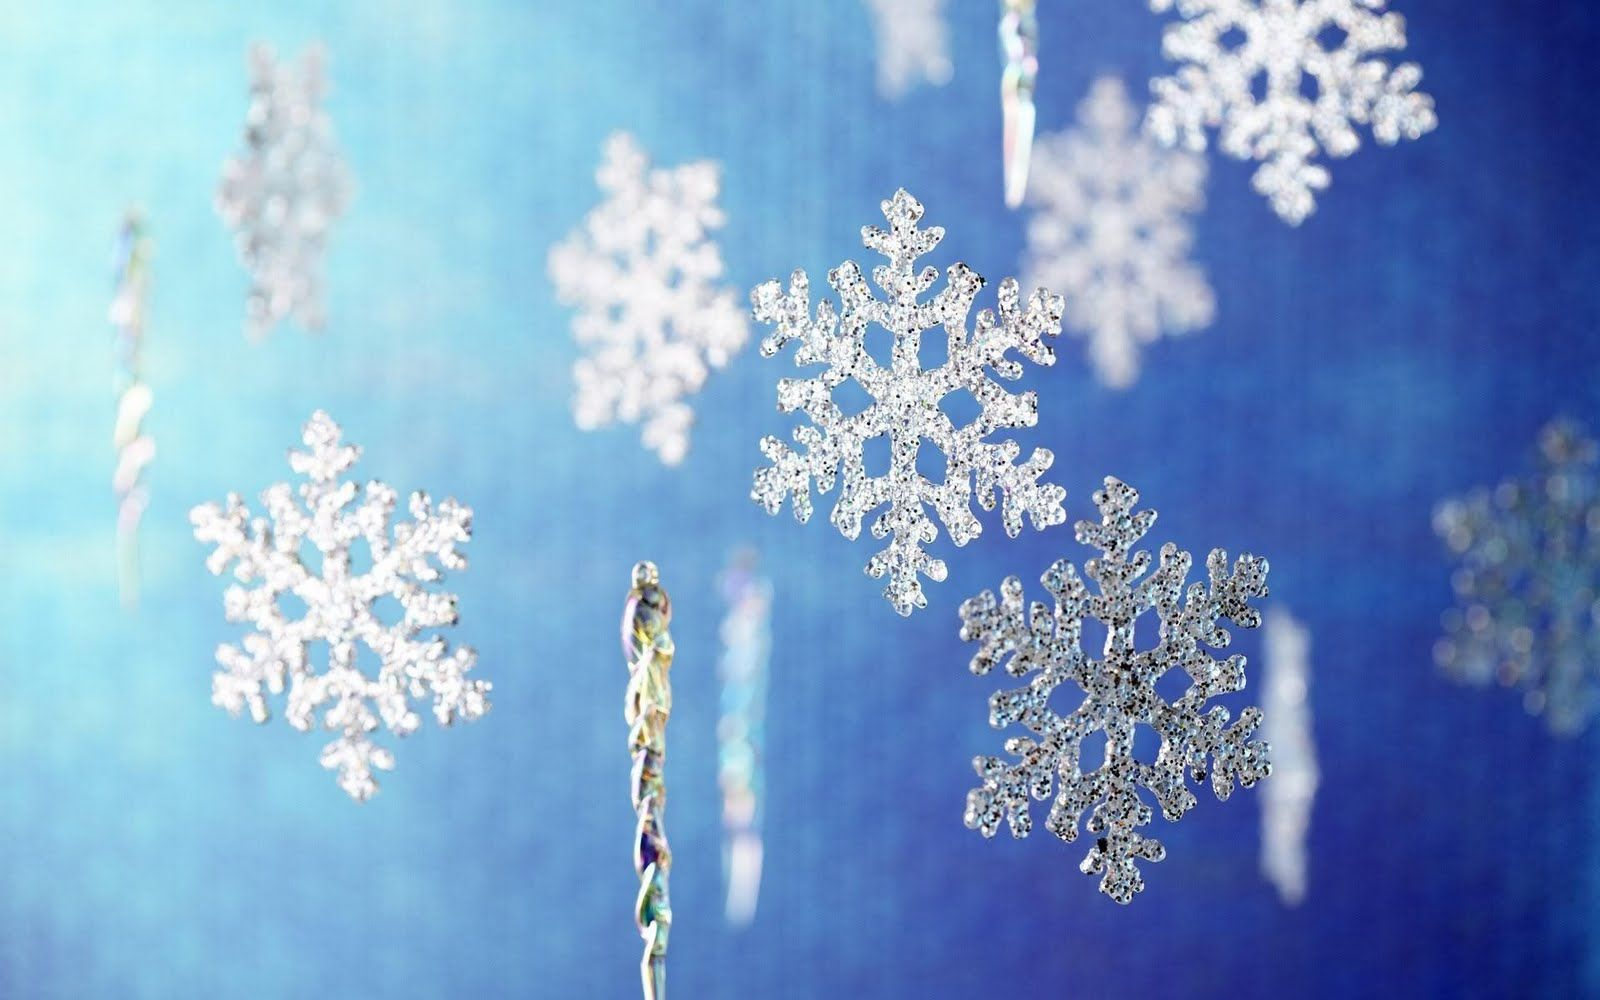 hight resolution of free clip art of snowflakes free jesus christ pictures christian images religious wallpapers